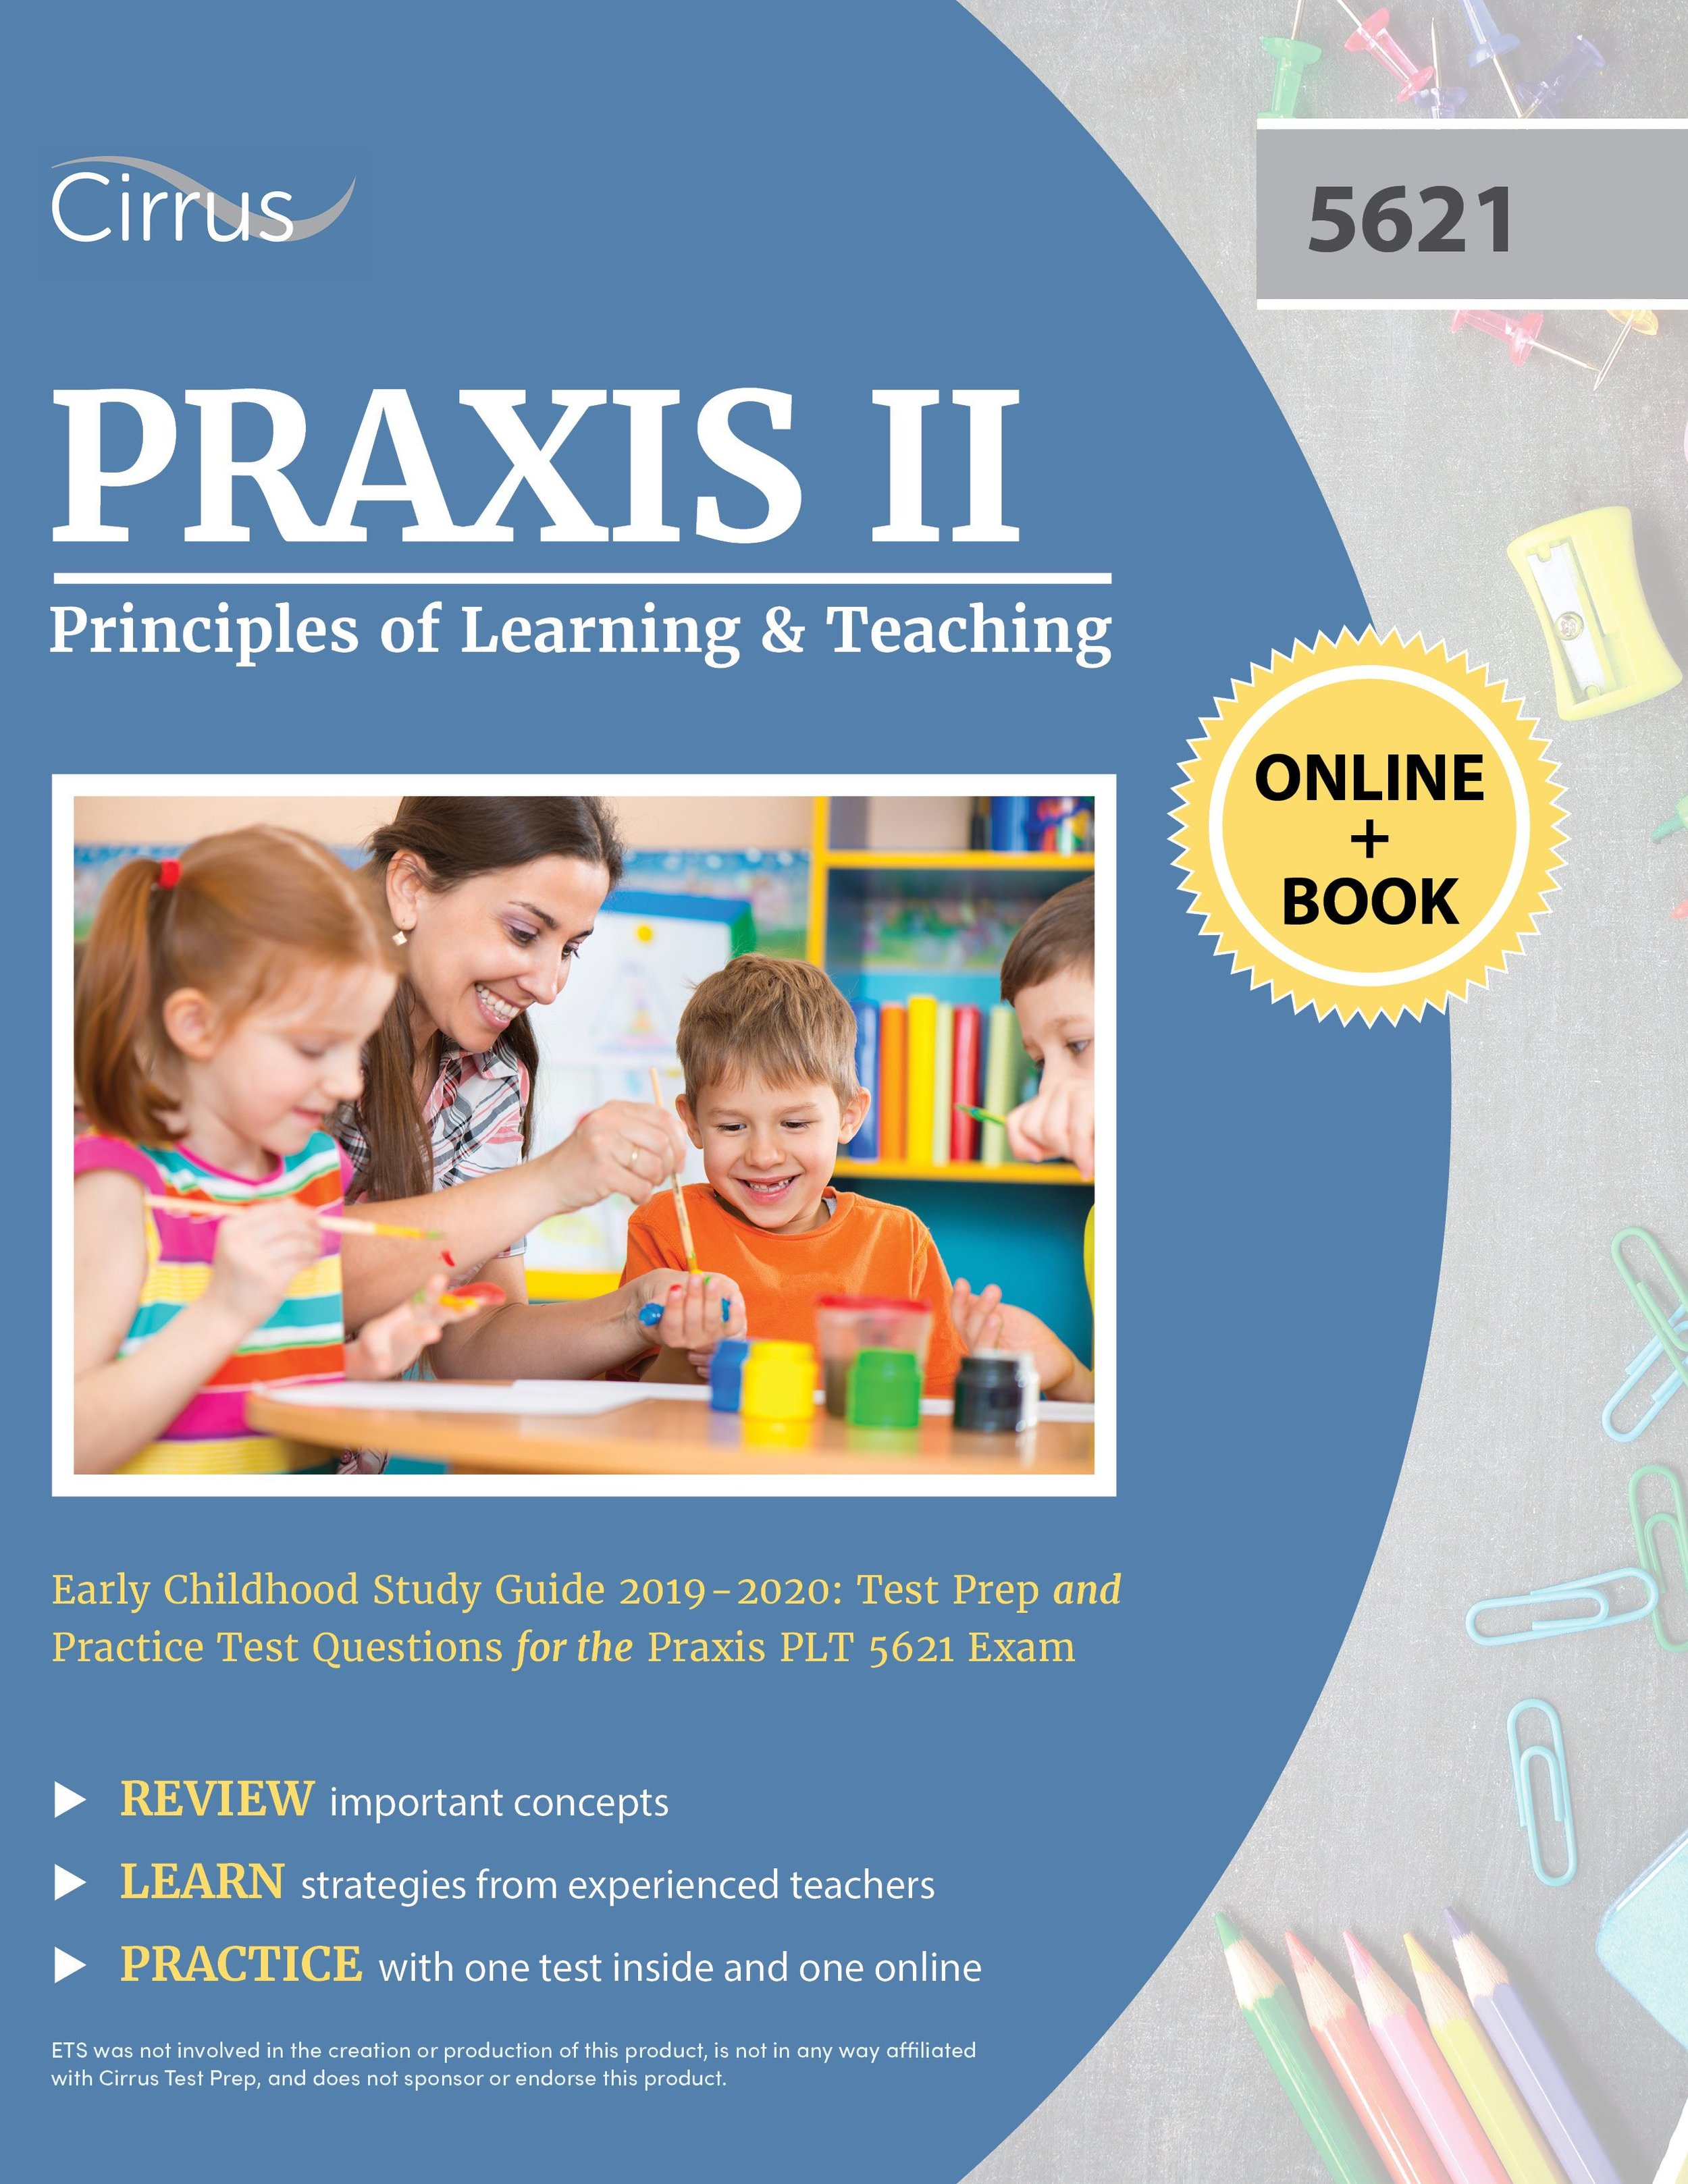 Praxis II Principles of Learning & Teaching Early Childhood Study Guide 2019 – 2020